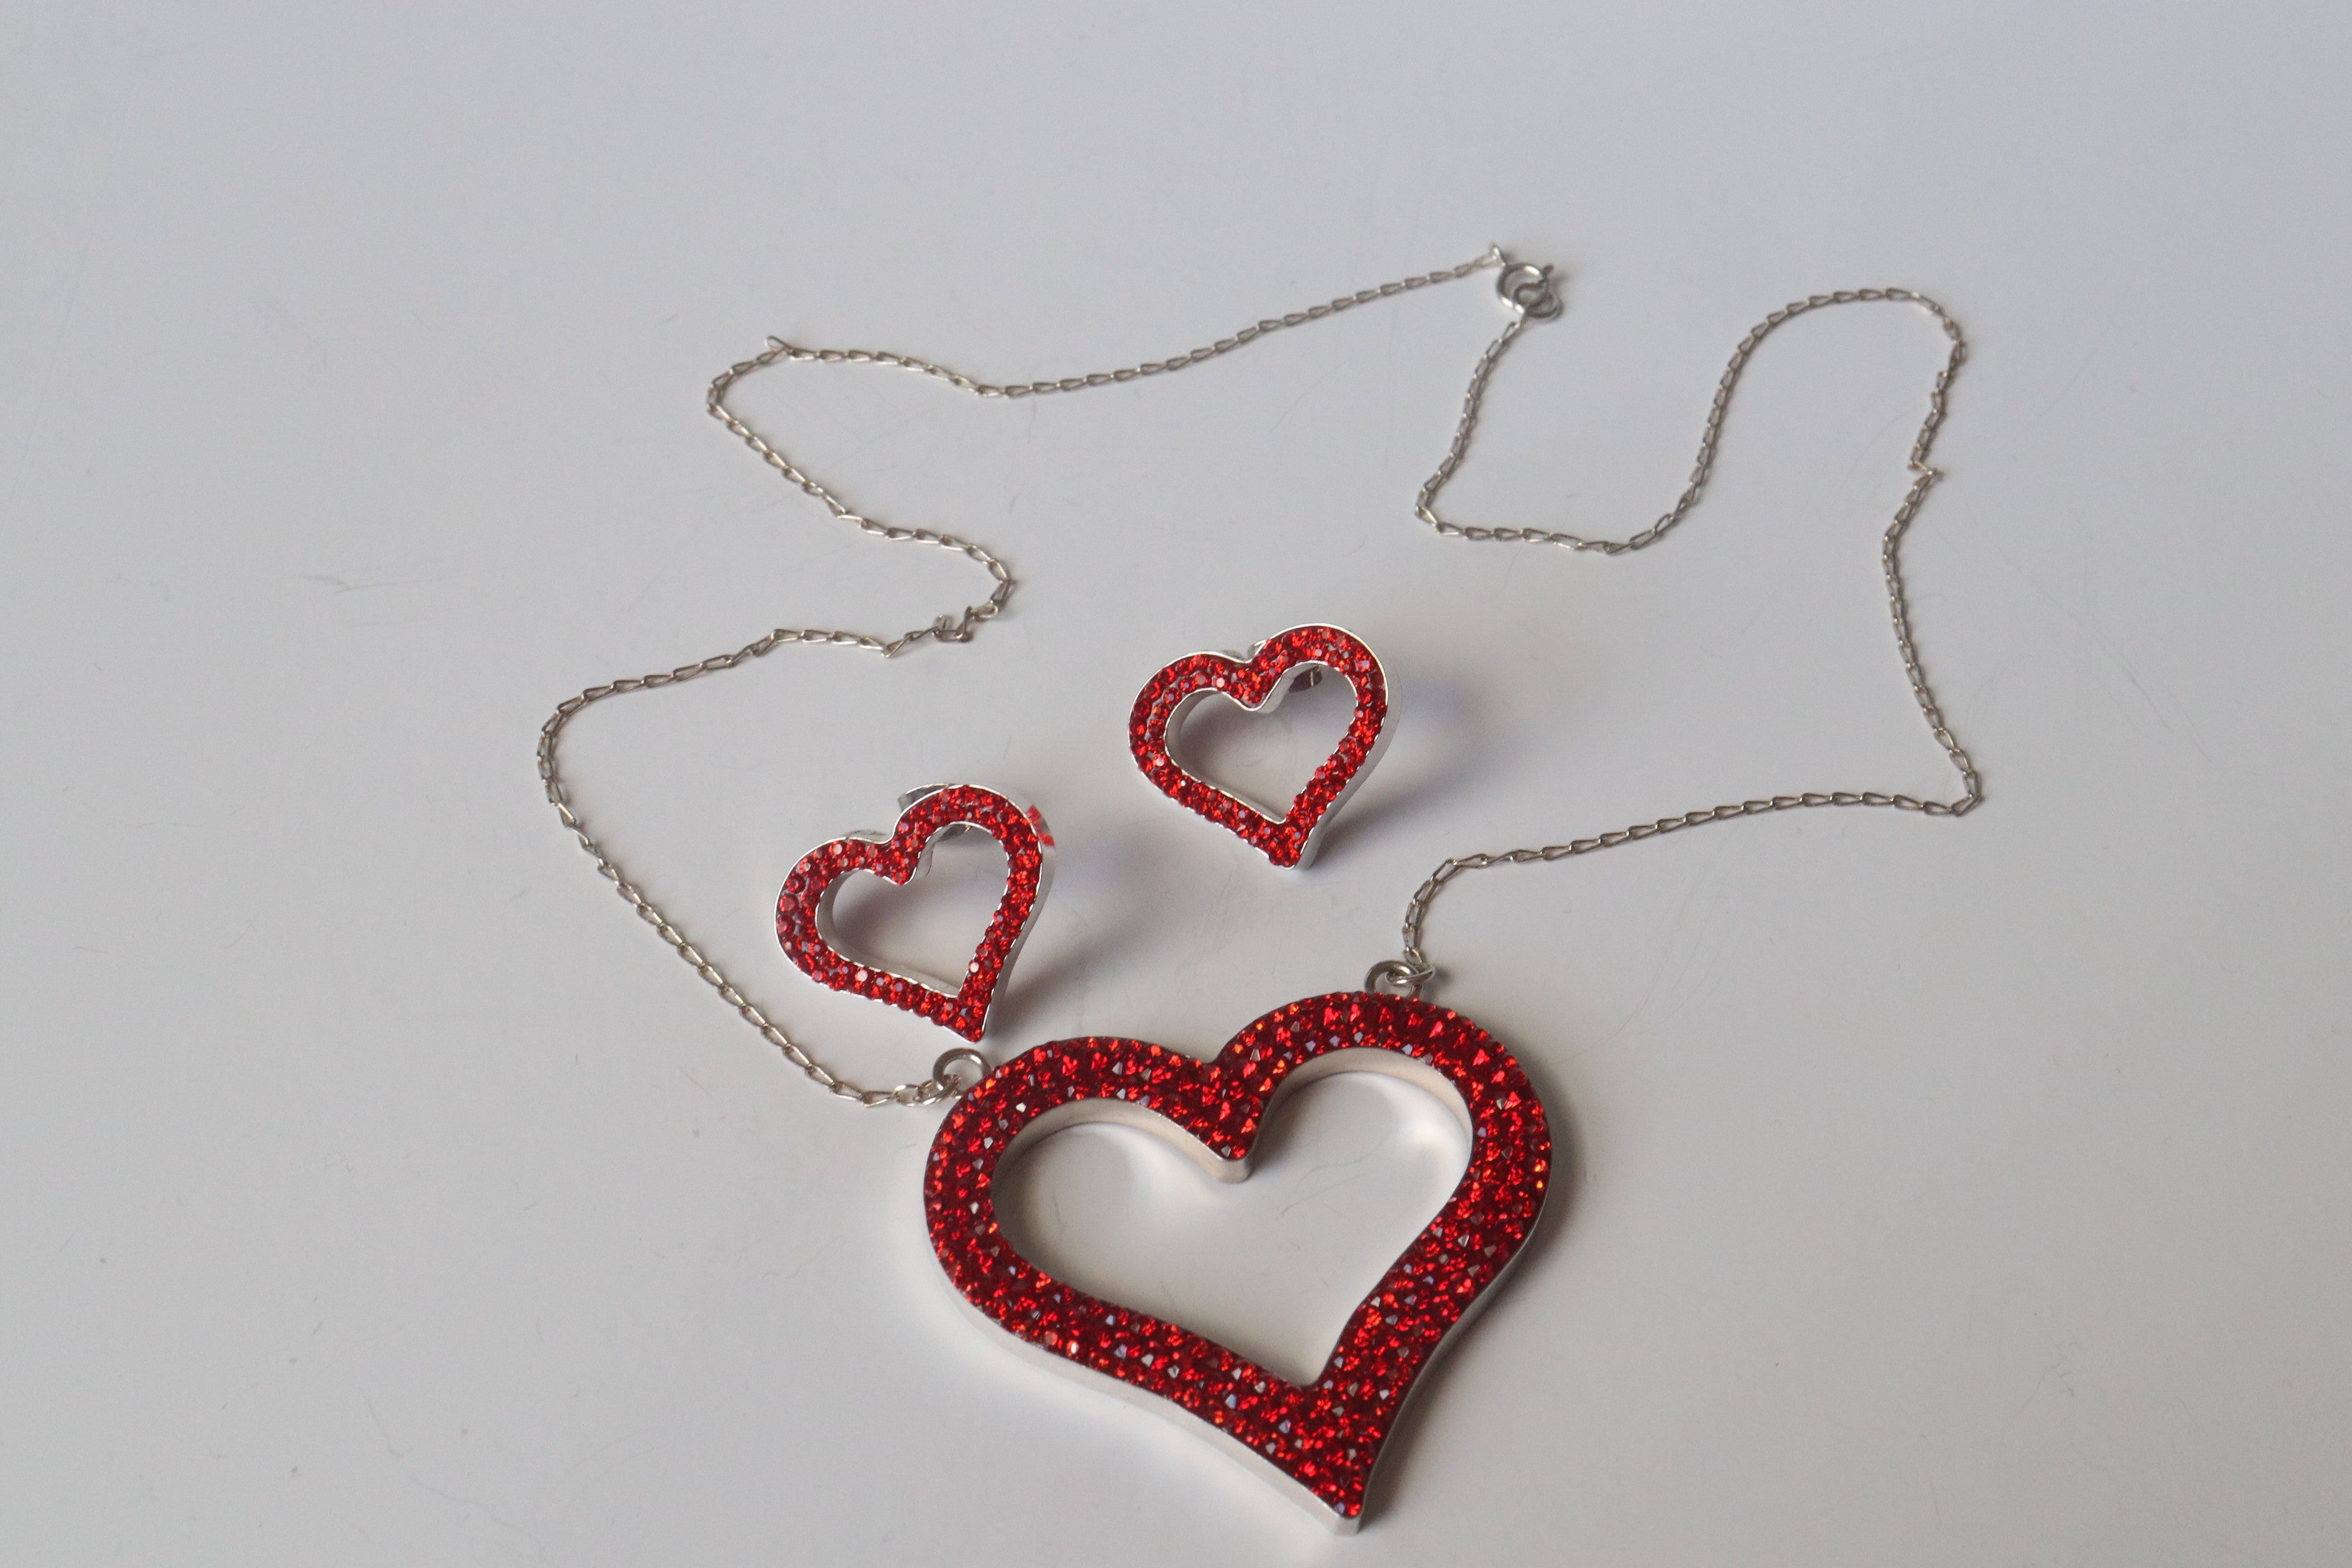 100% Sterling .925 Silver Set of Glued Necklace and Earrings Heart Design, Good for Valentine gift